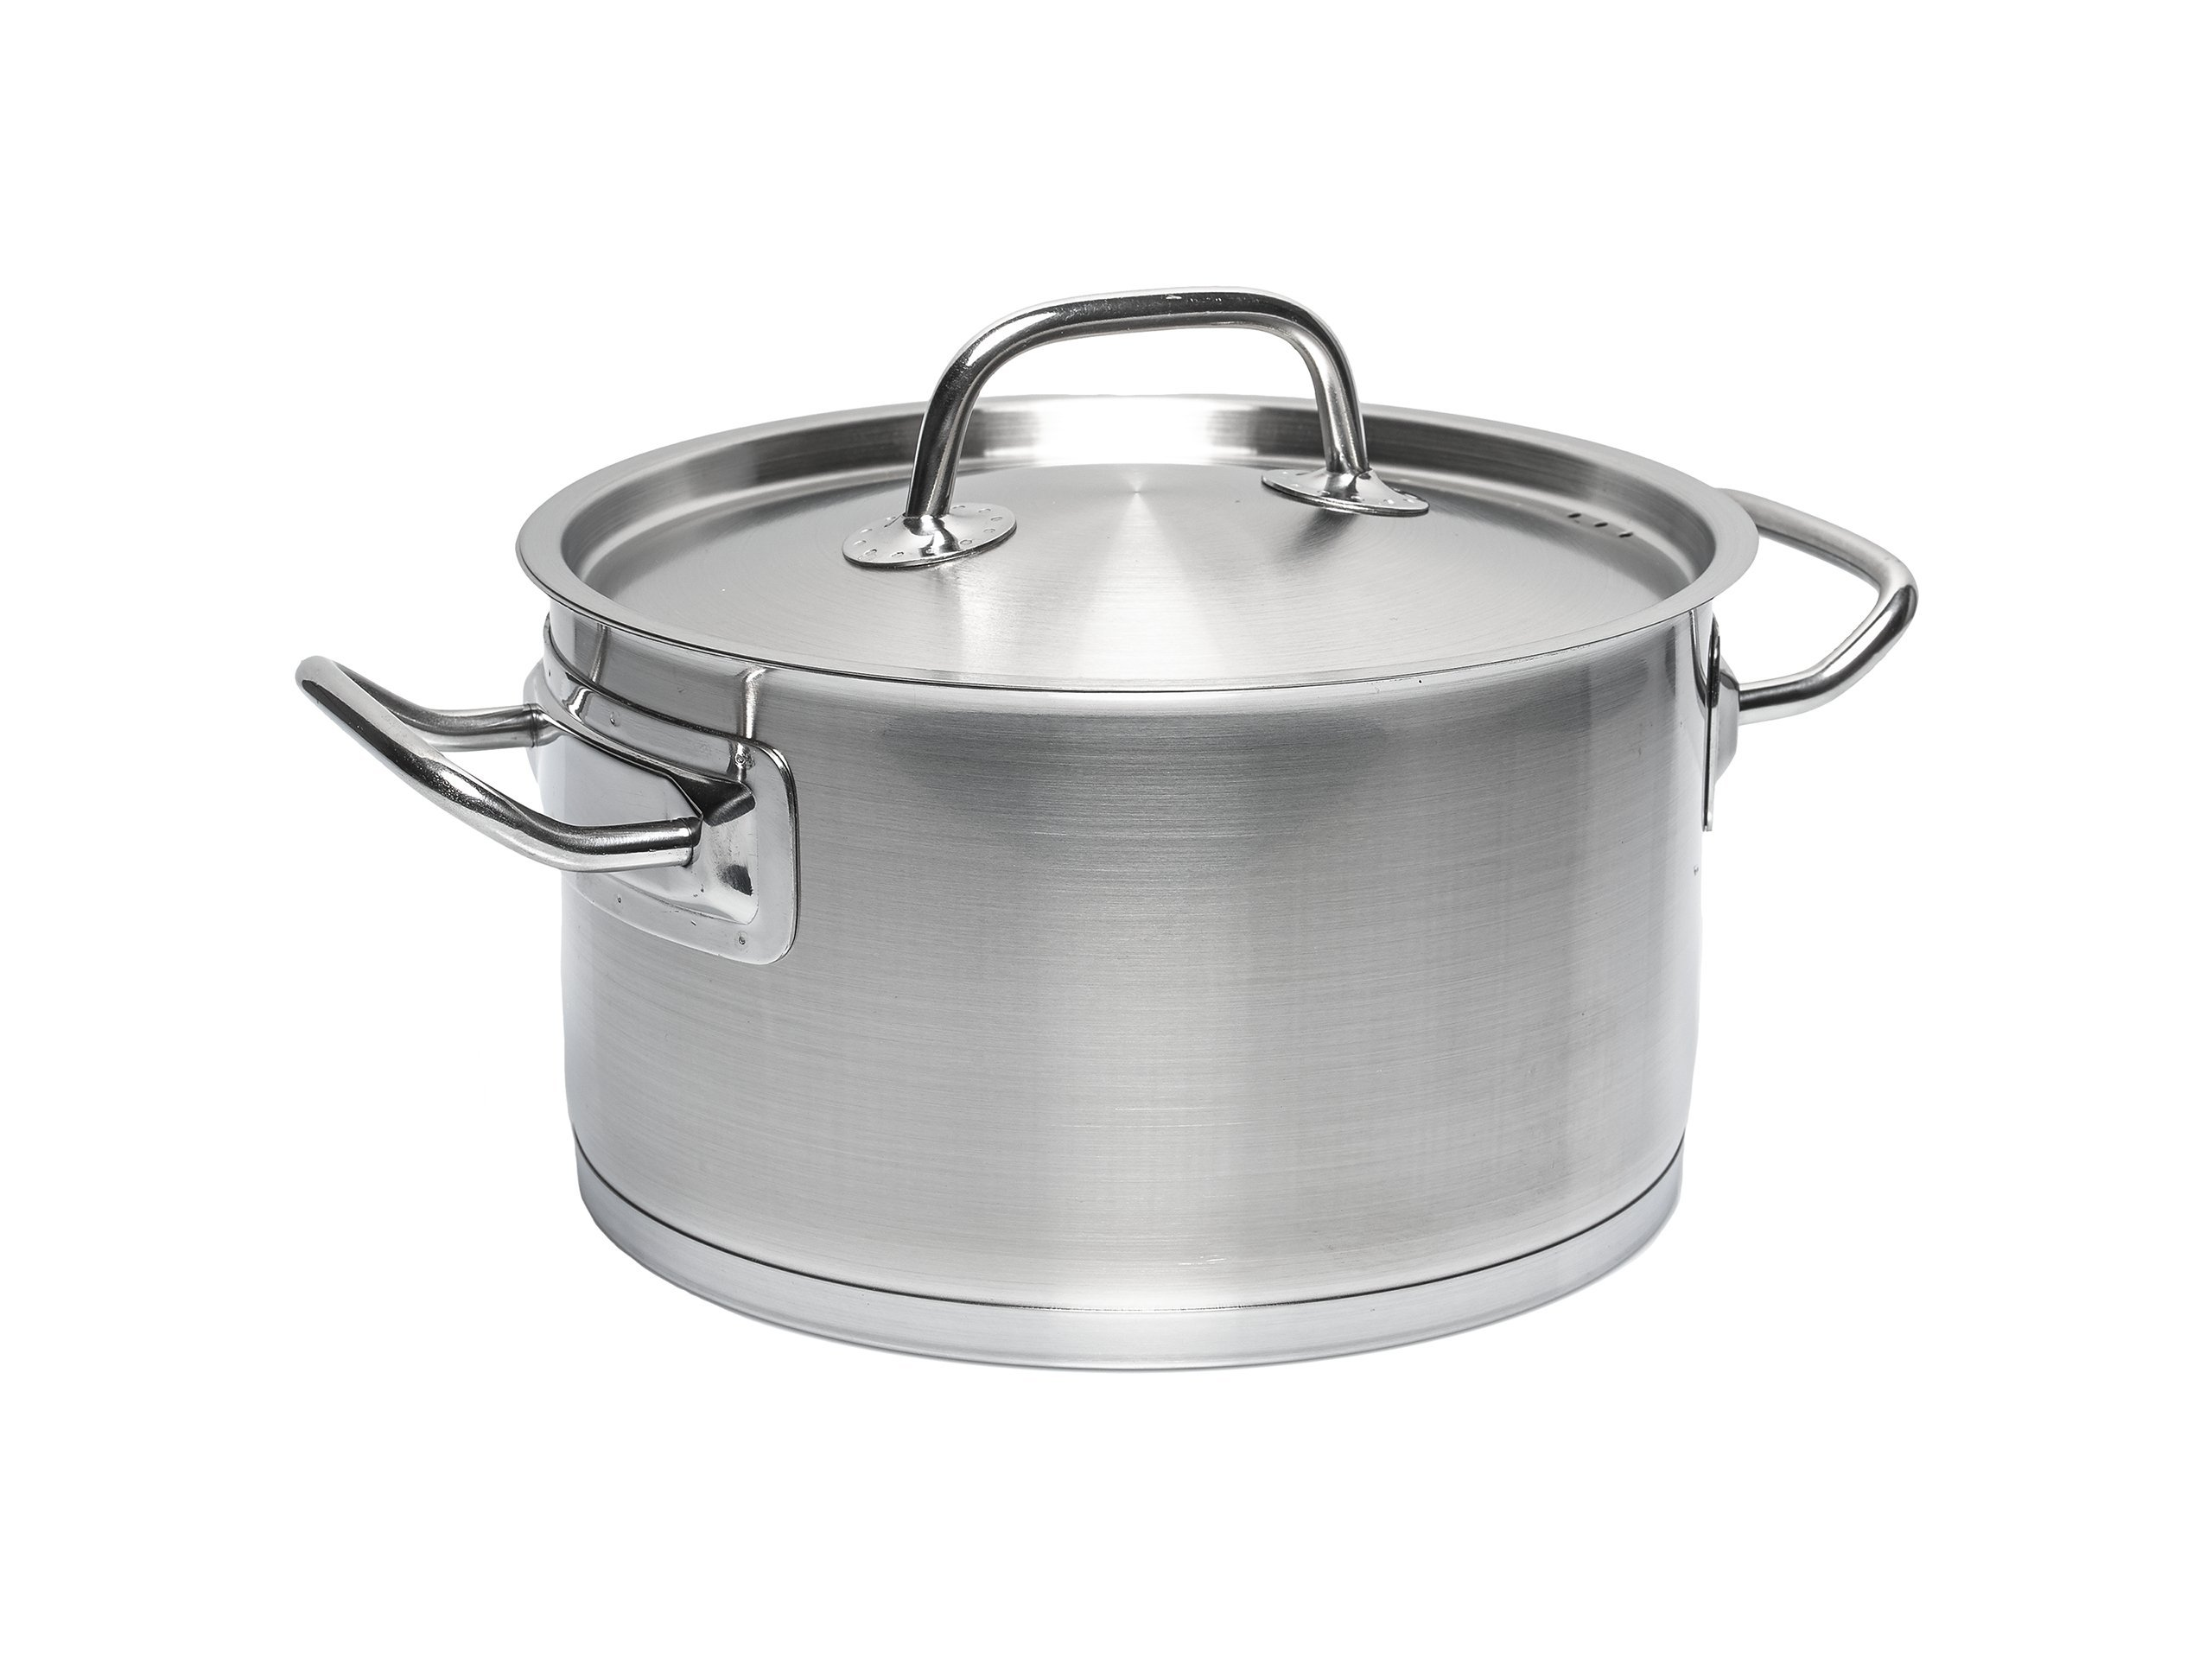 Sola Profiline Deluxe Cooking Pot, Stainless Steel, Stainless Steel Colour, 16 cm/1.5 Litre